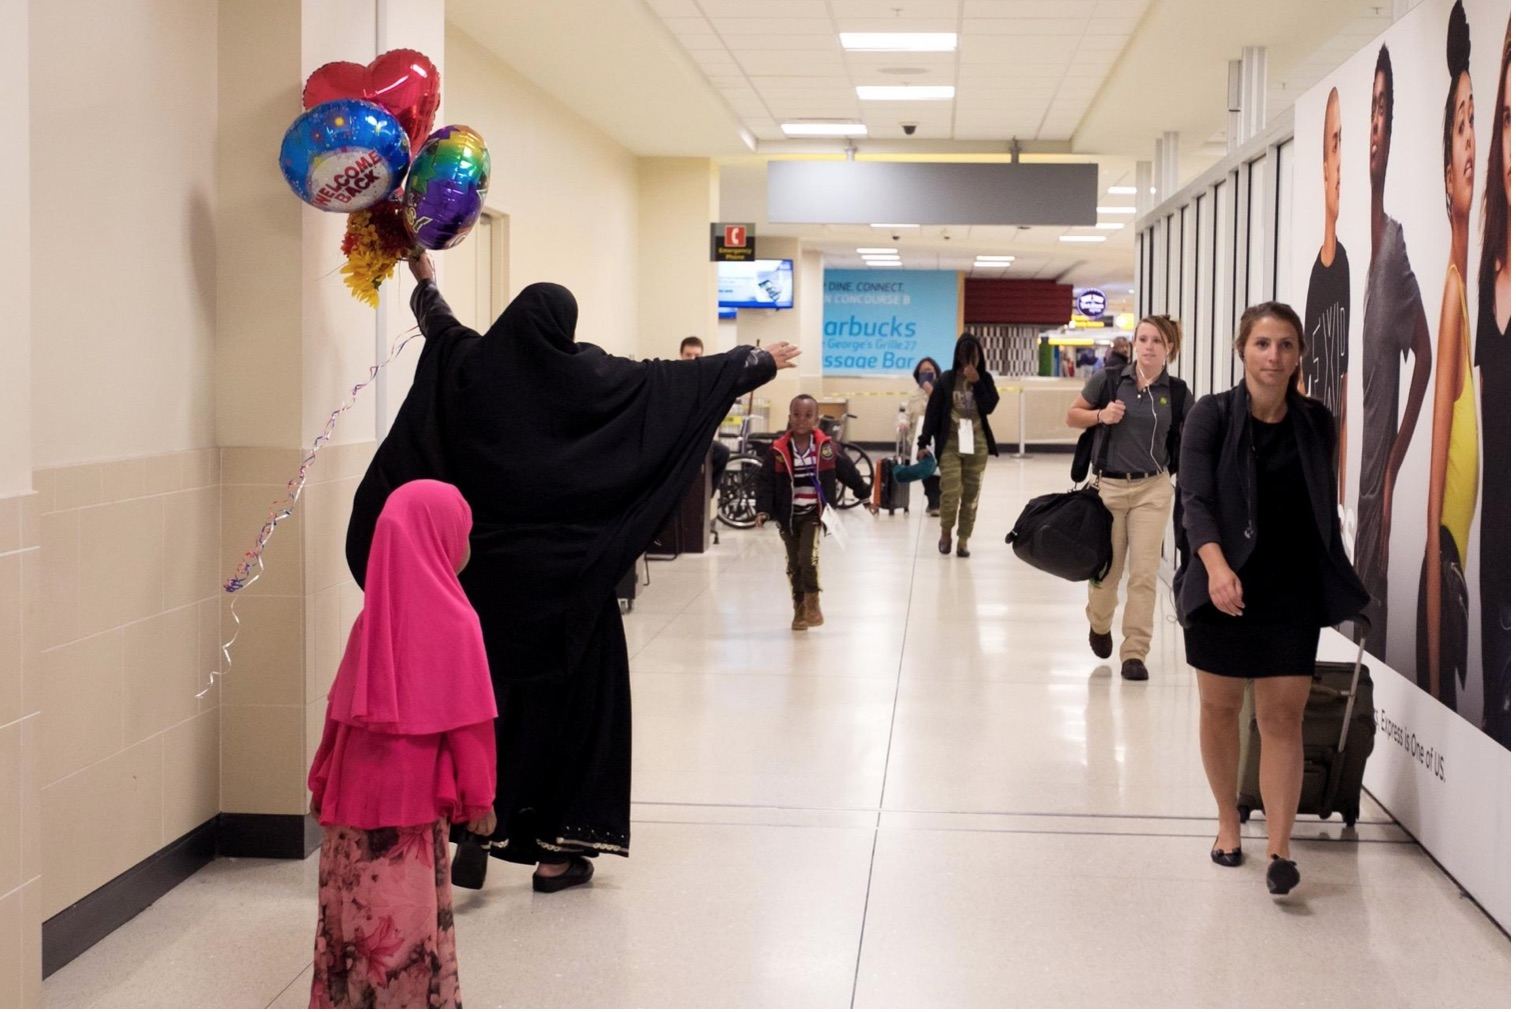 The fight over Trump's travel ban continues a year after Supreme Court ruling